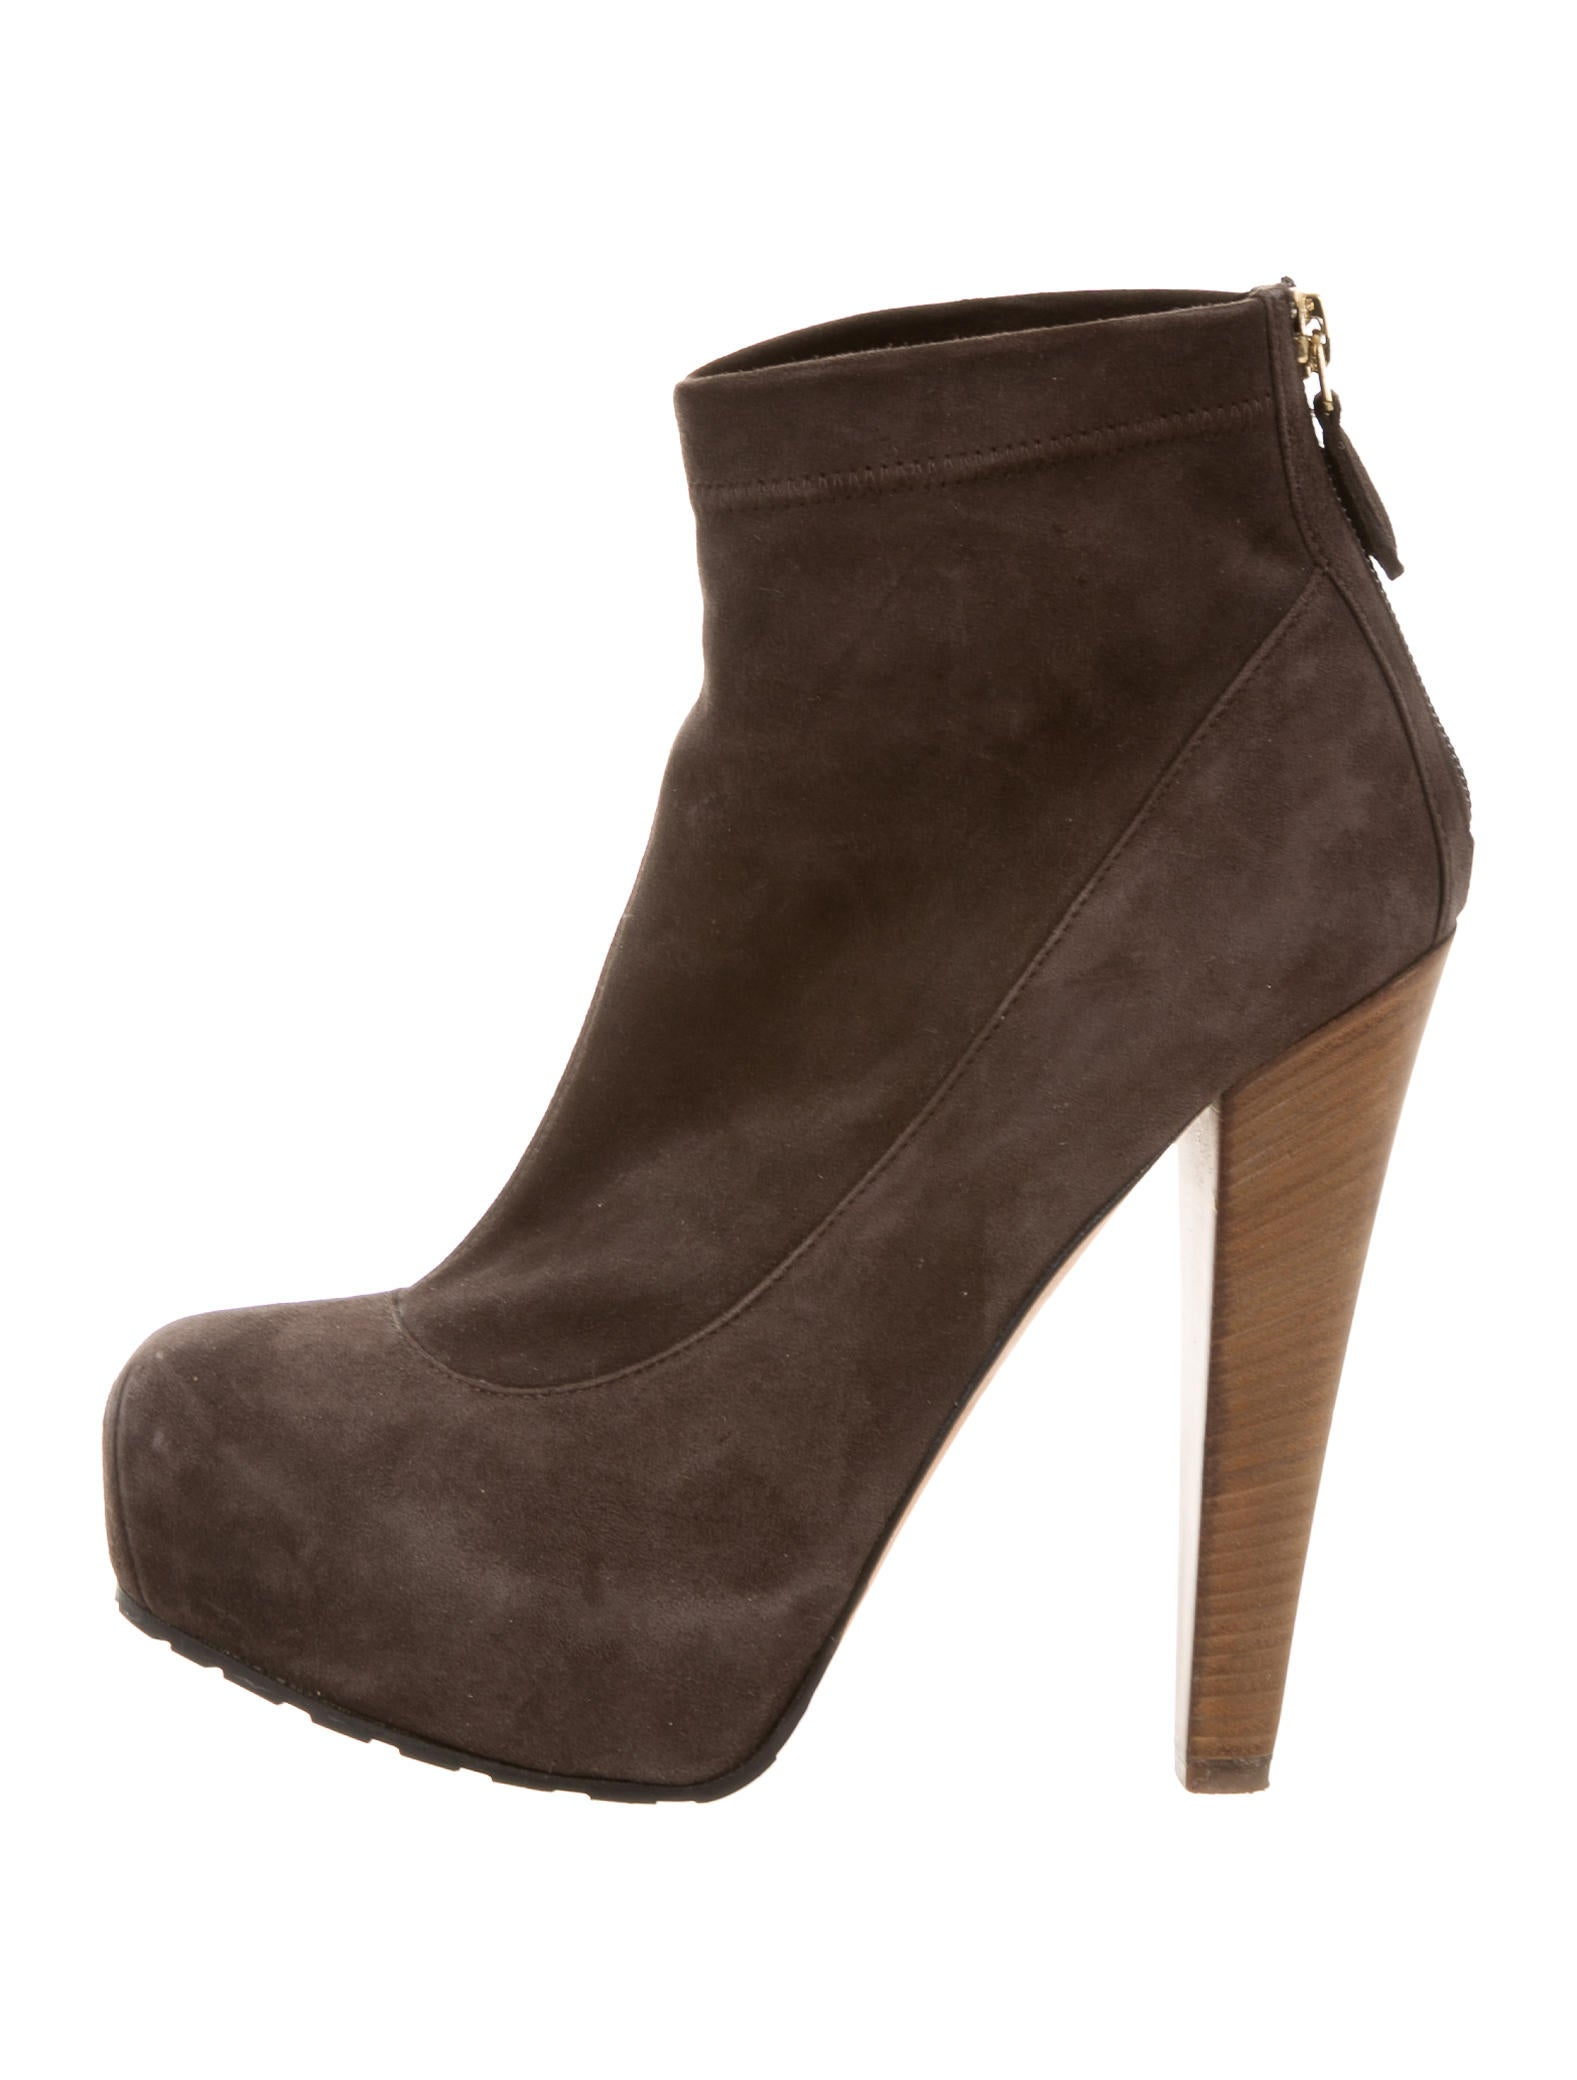 brian atwood suede platform booties shoes bri23196